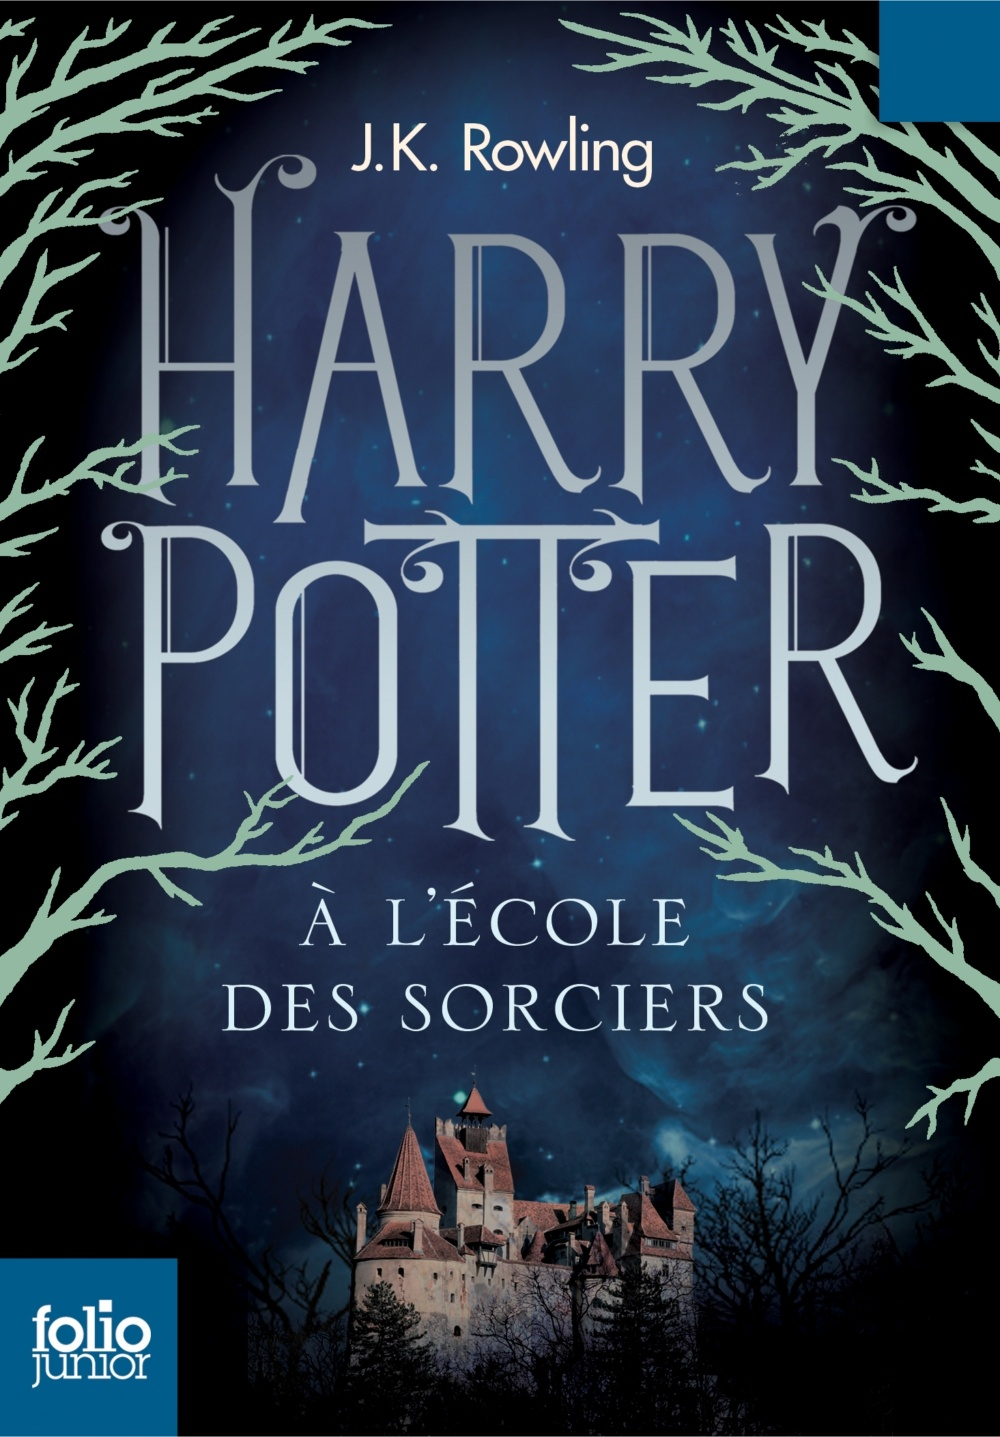 Couvertures Images Et Illustrations De Harry Potter Tome 1